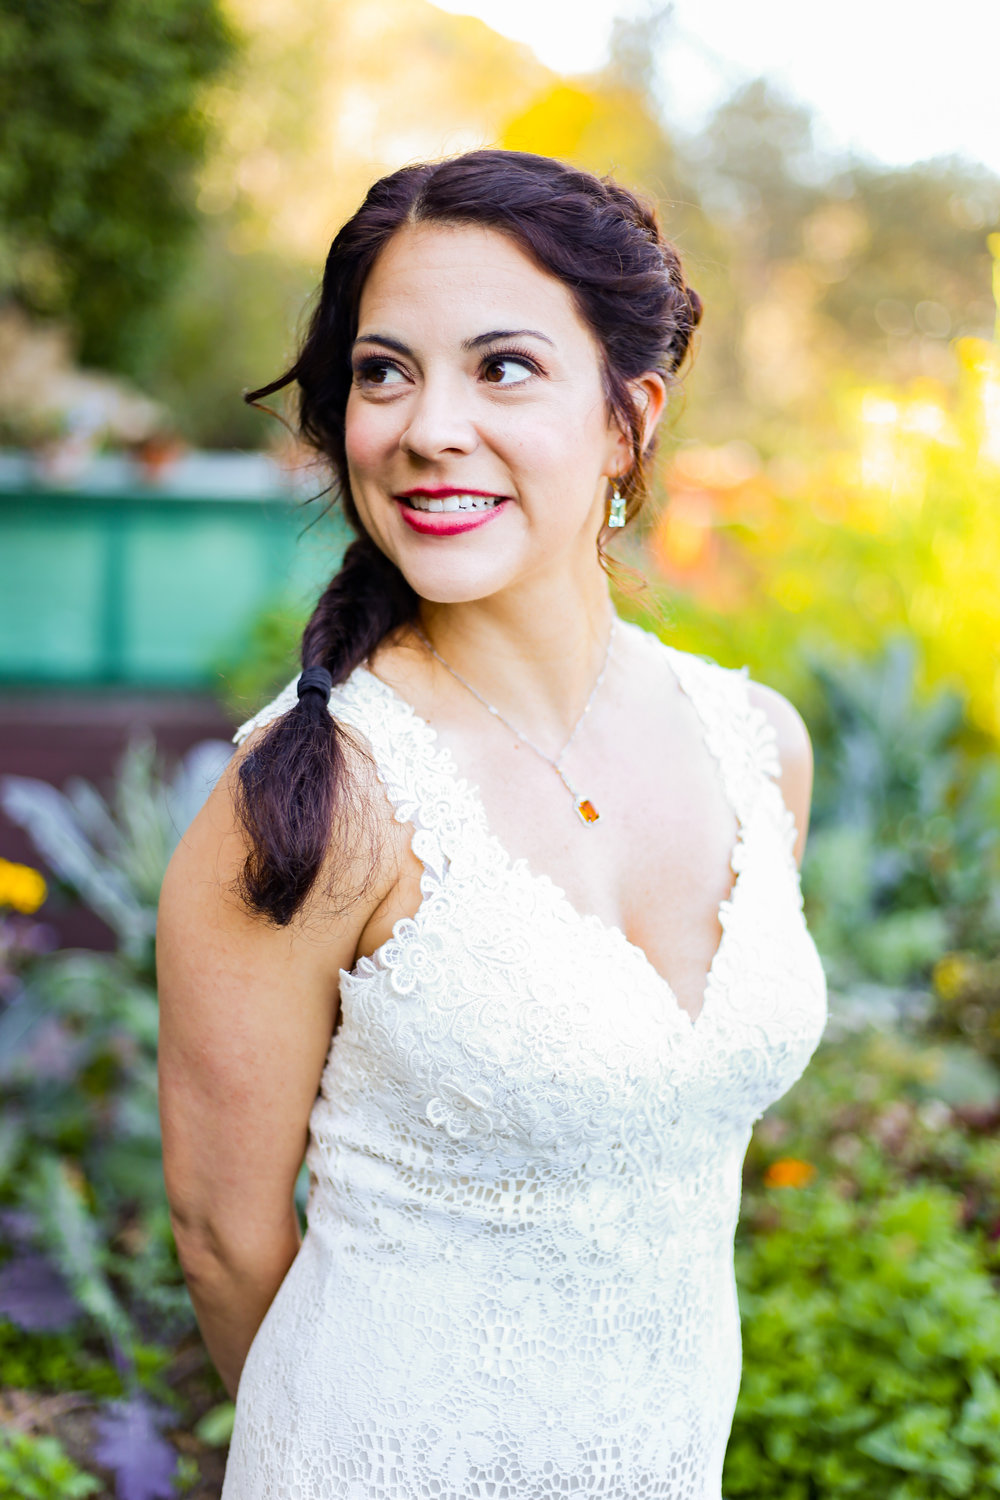 alexandra-rice-photography-shadowbrook-capitola-santa cruz-wedding-bride-portrait-garden.jpg